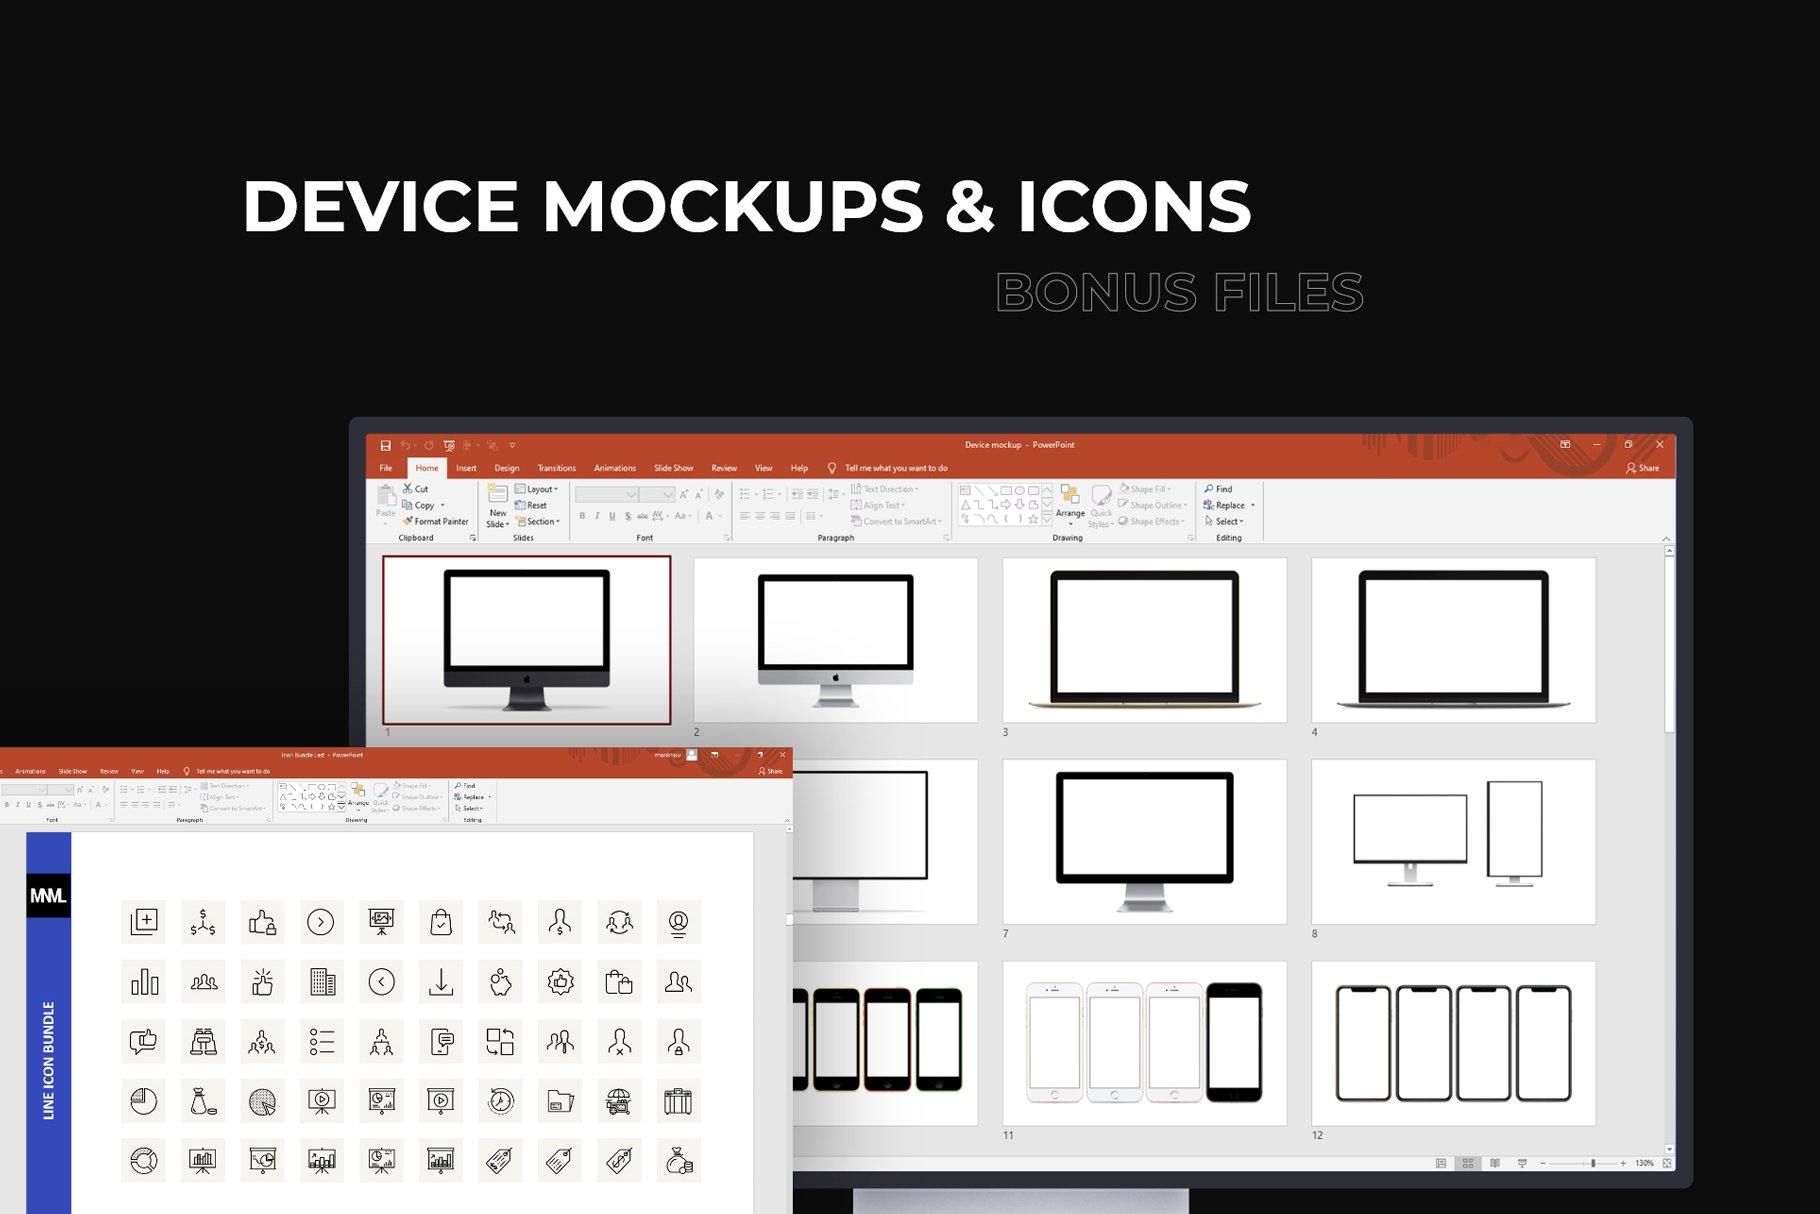 You will have a bonus - device mockups and icons.